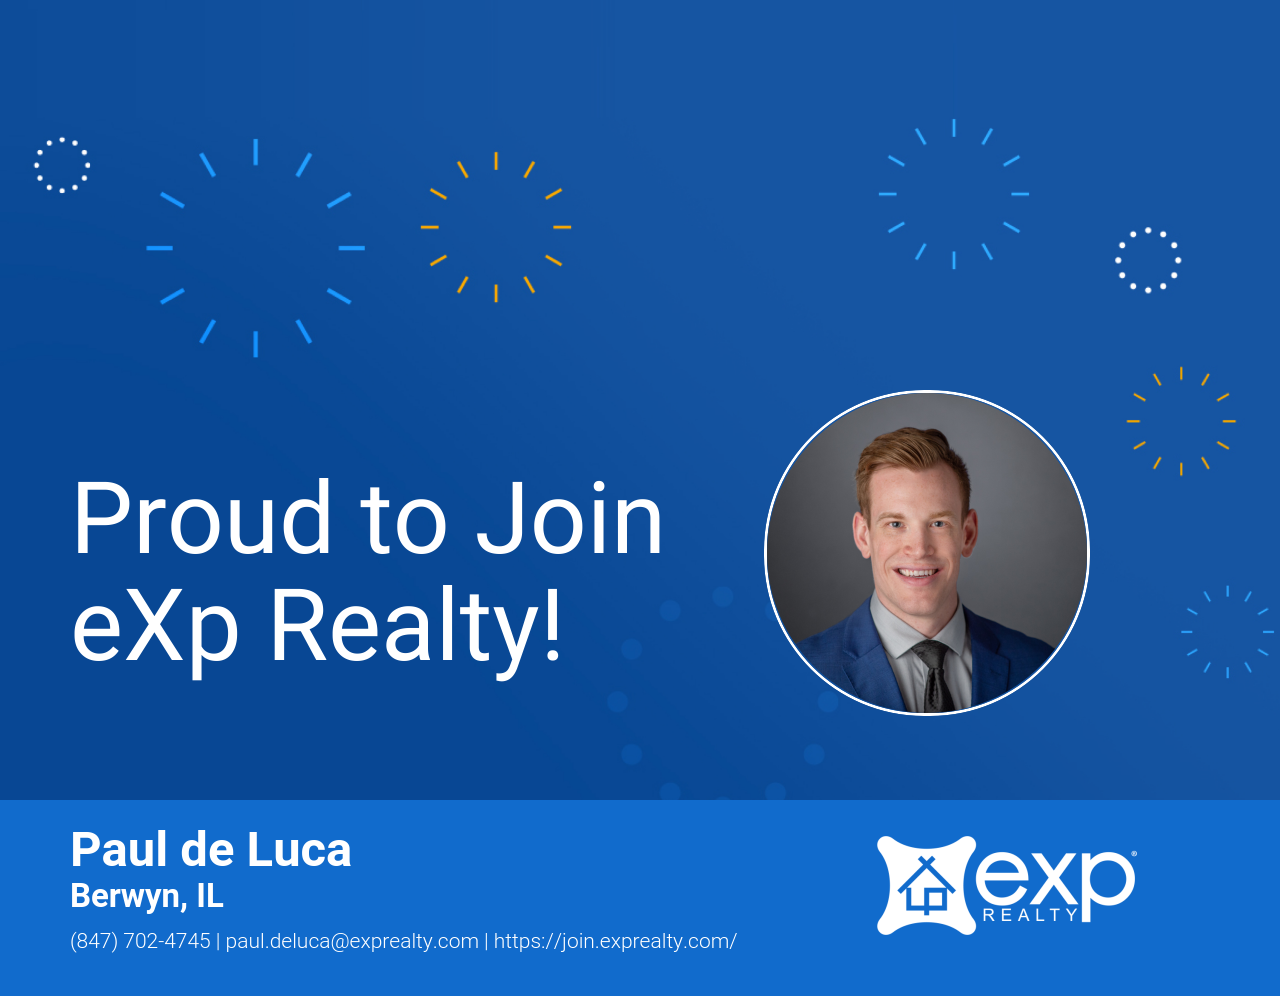 Paul de Luca Joined eXp Realty!